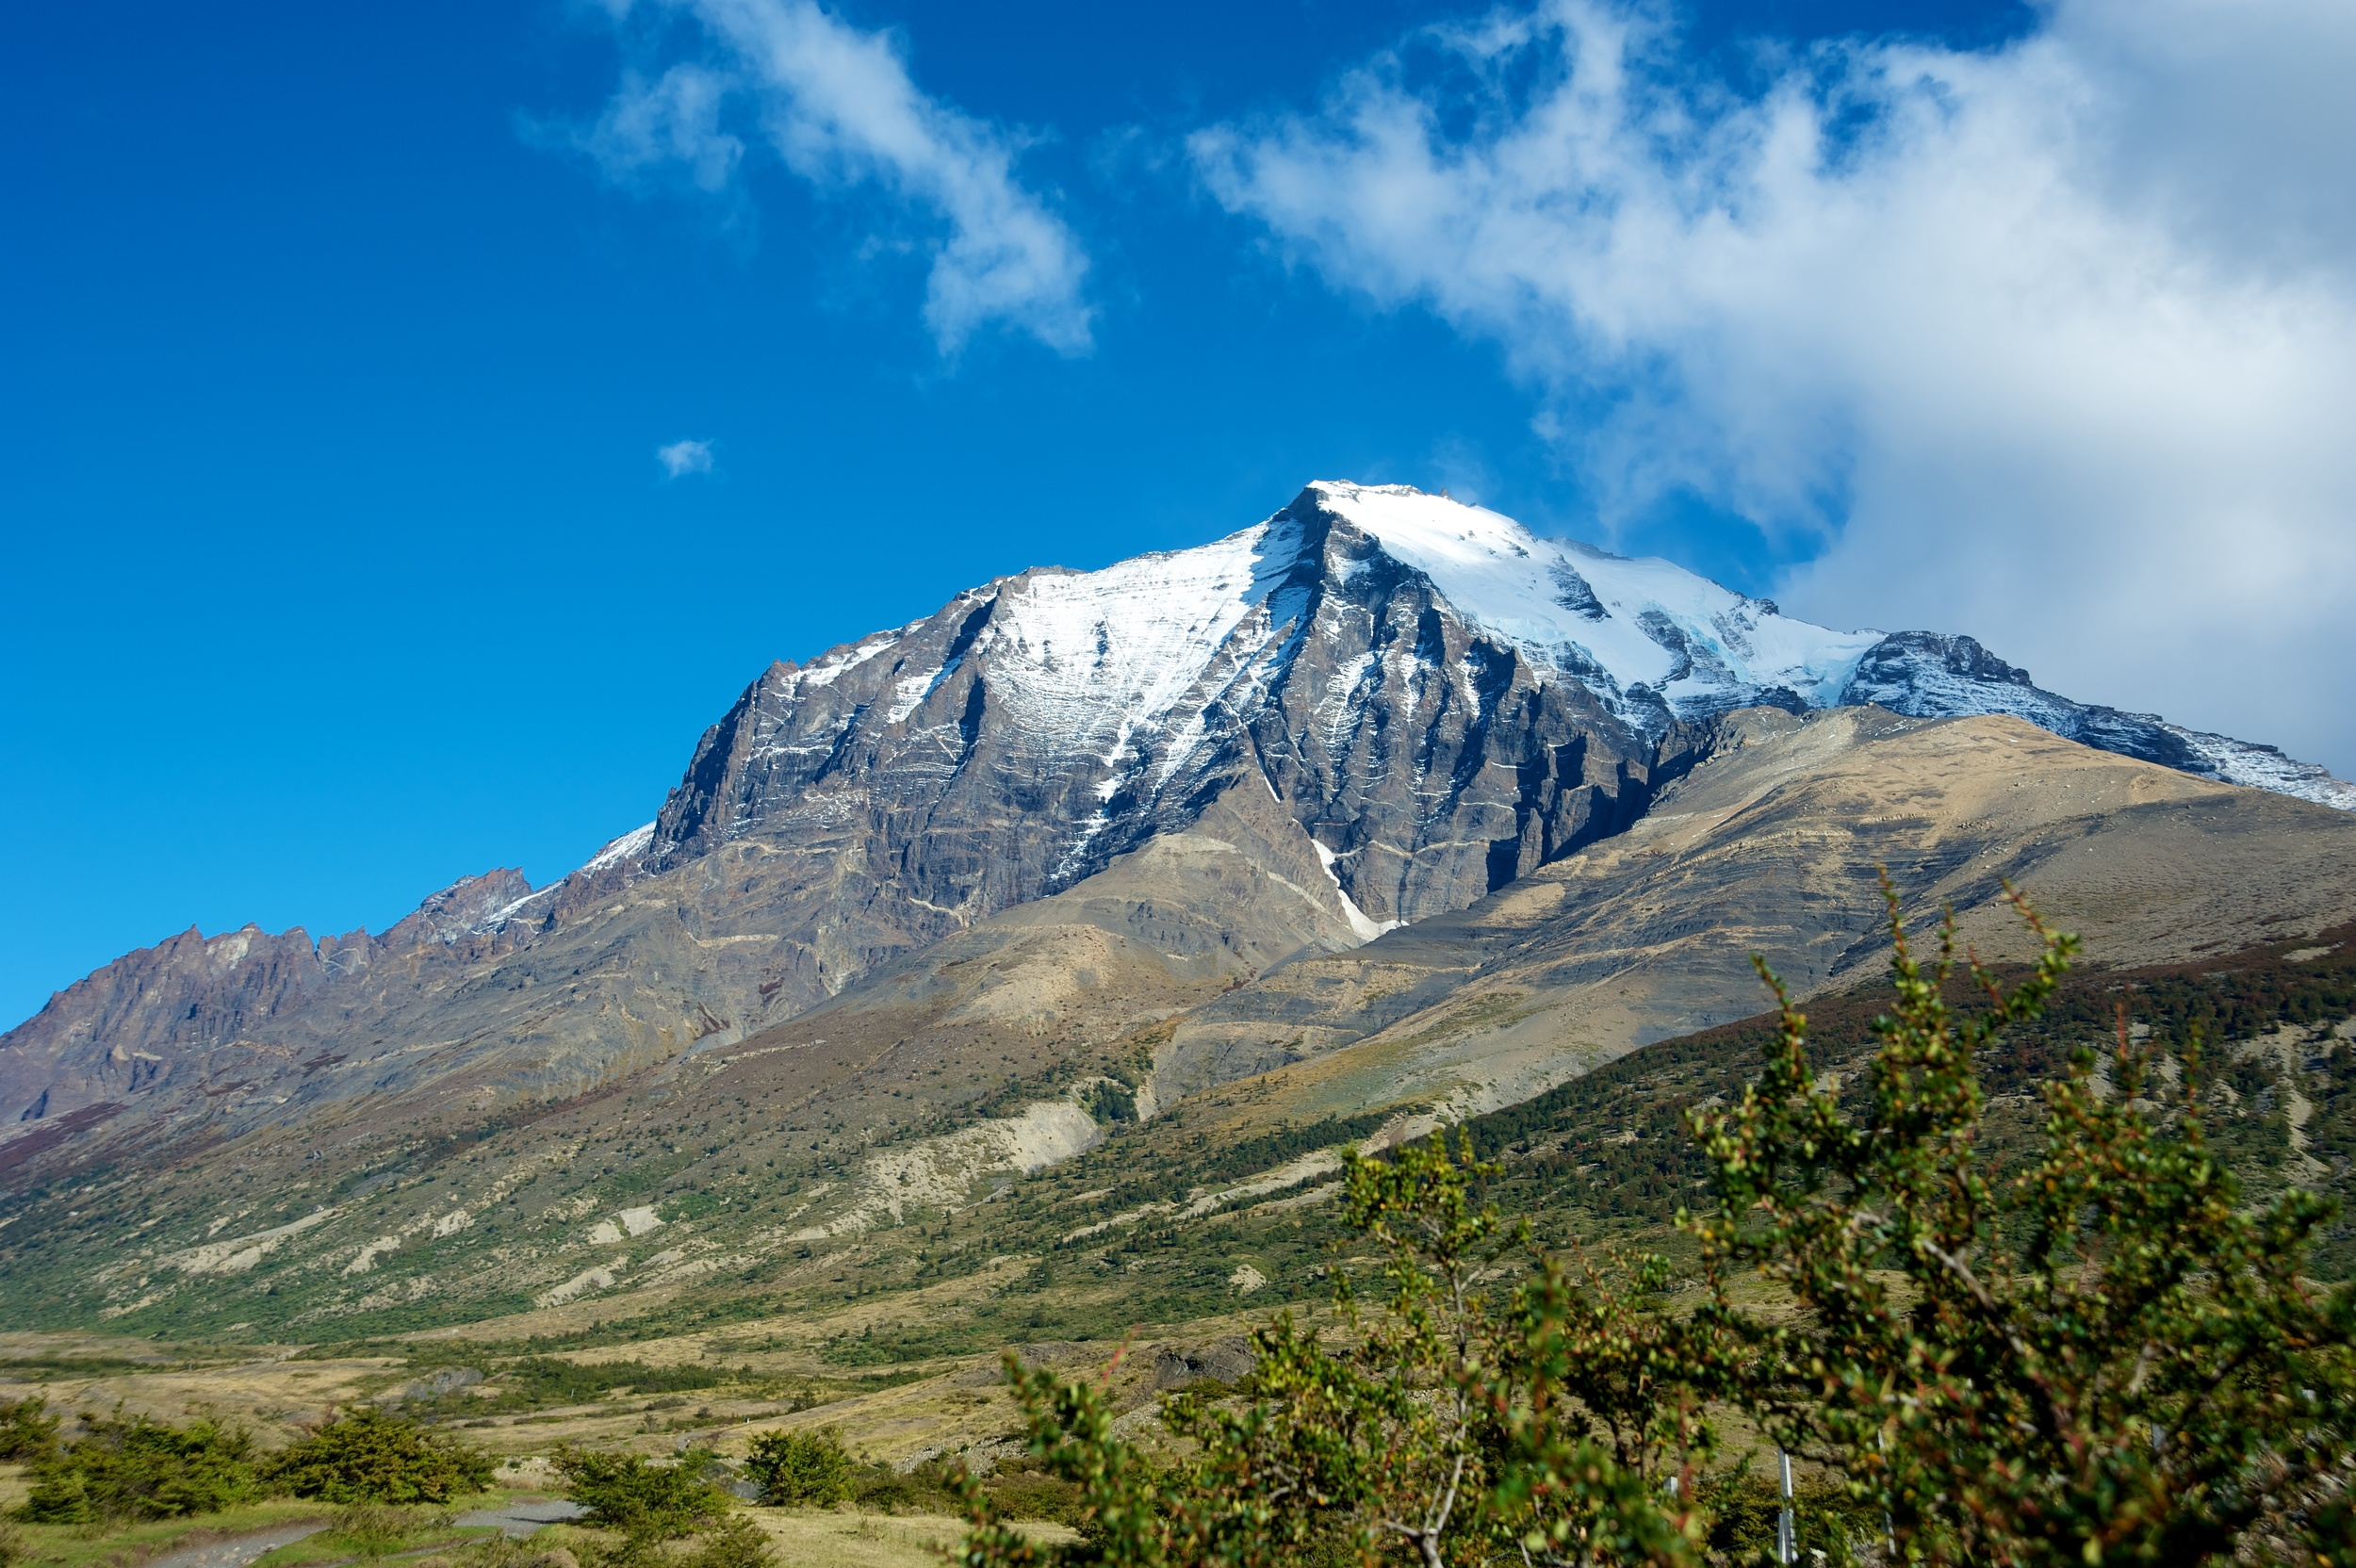 Mountain peak, start of Towers walk, Torres del Paine, Patagonia, Chile, 3 Apr 2012